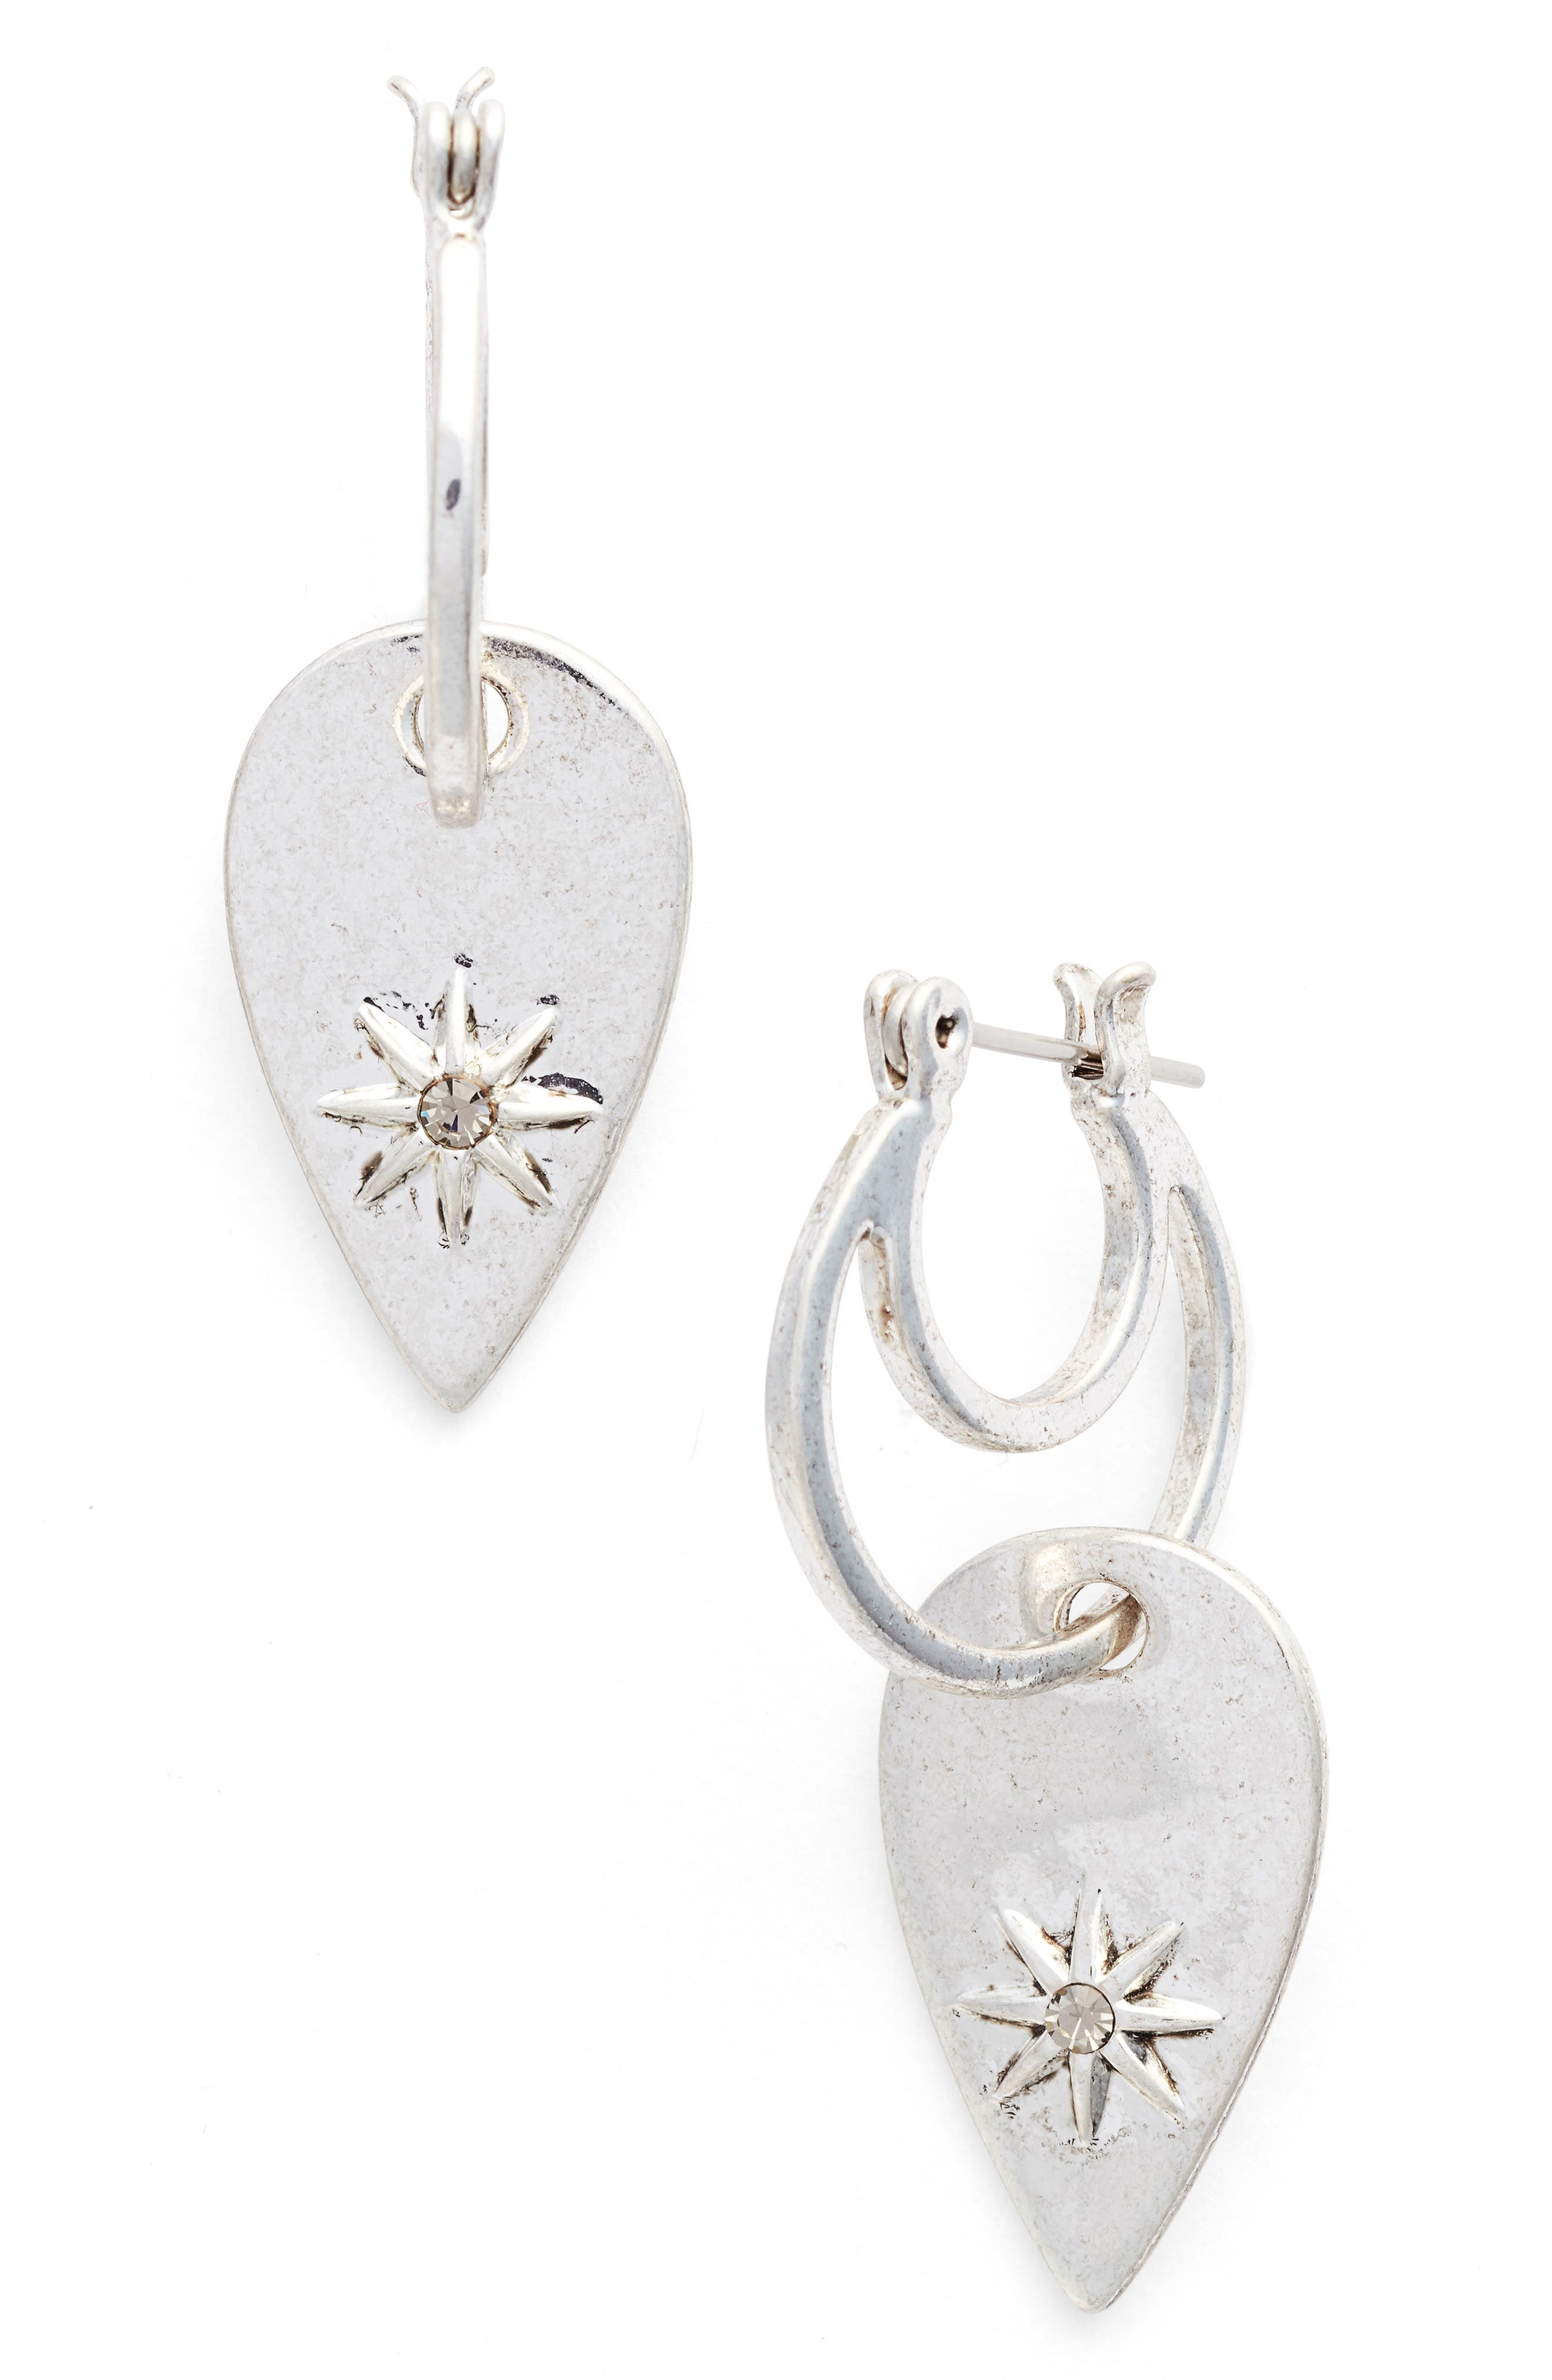 Starburst Double Drop Earrings,                             Main thumbnail 1, color,                             040